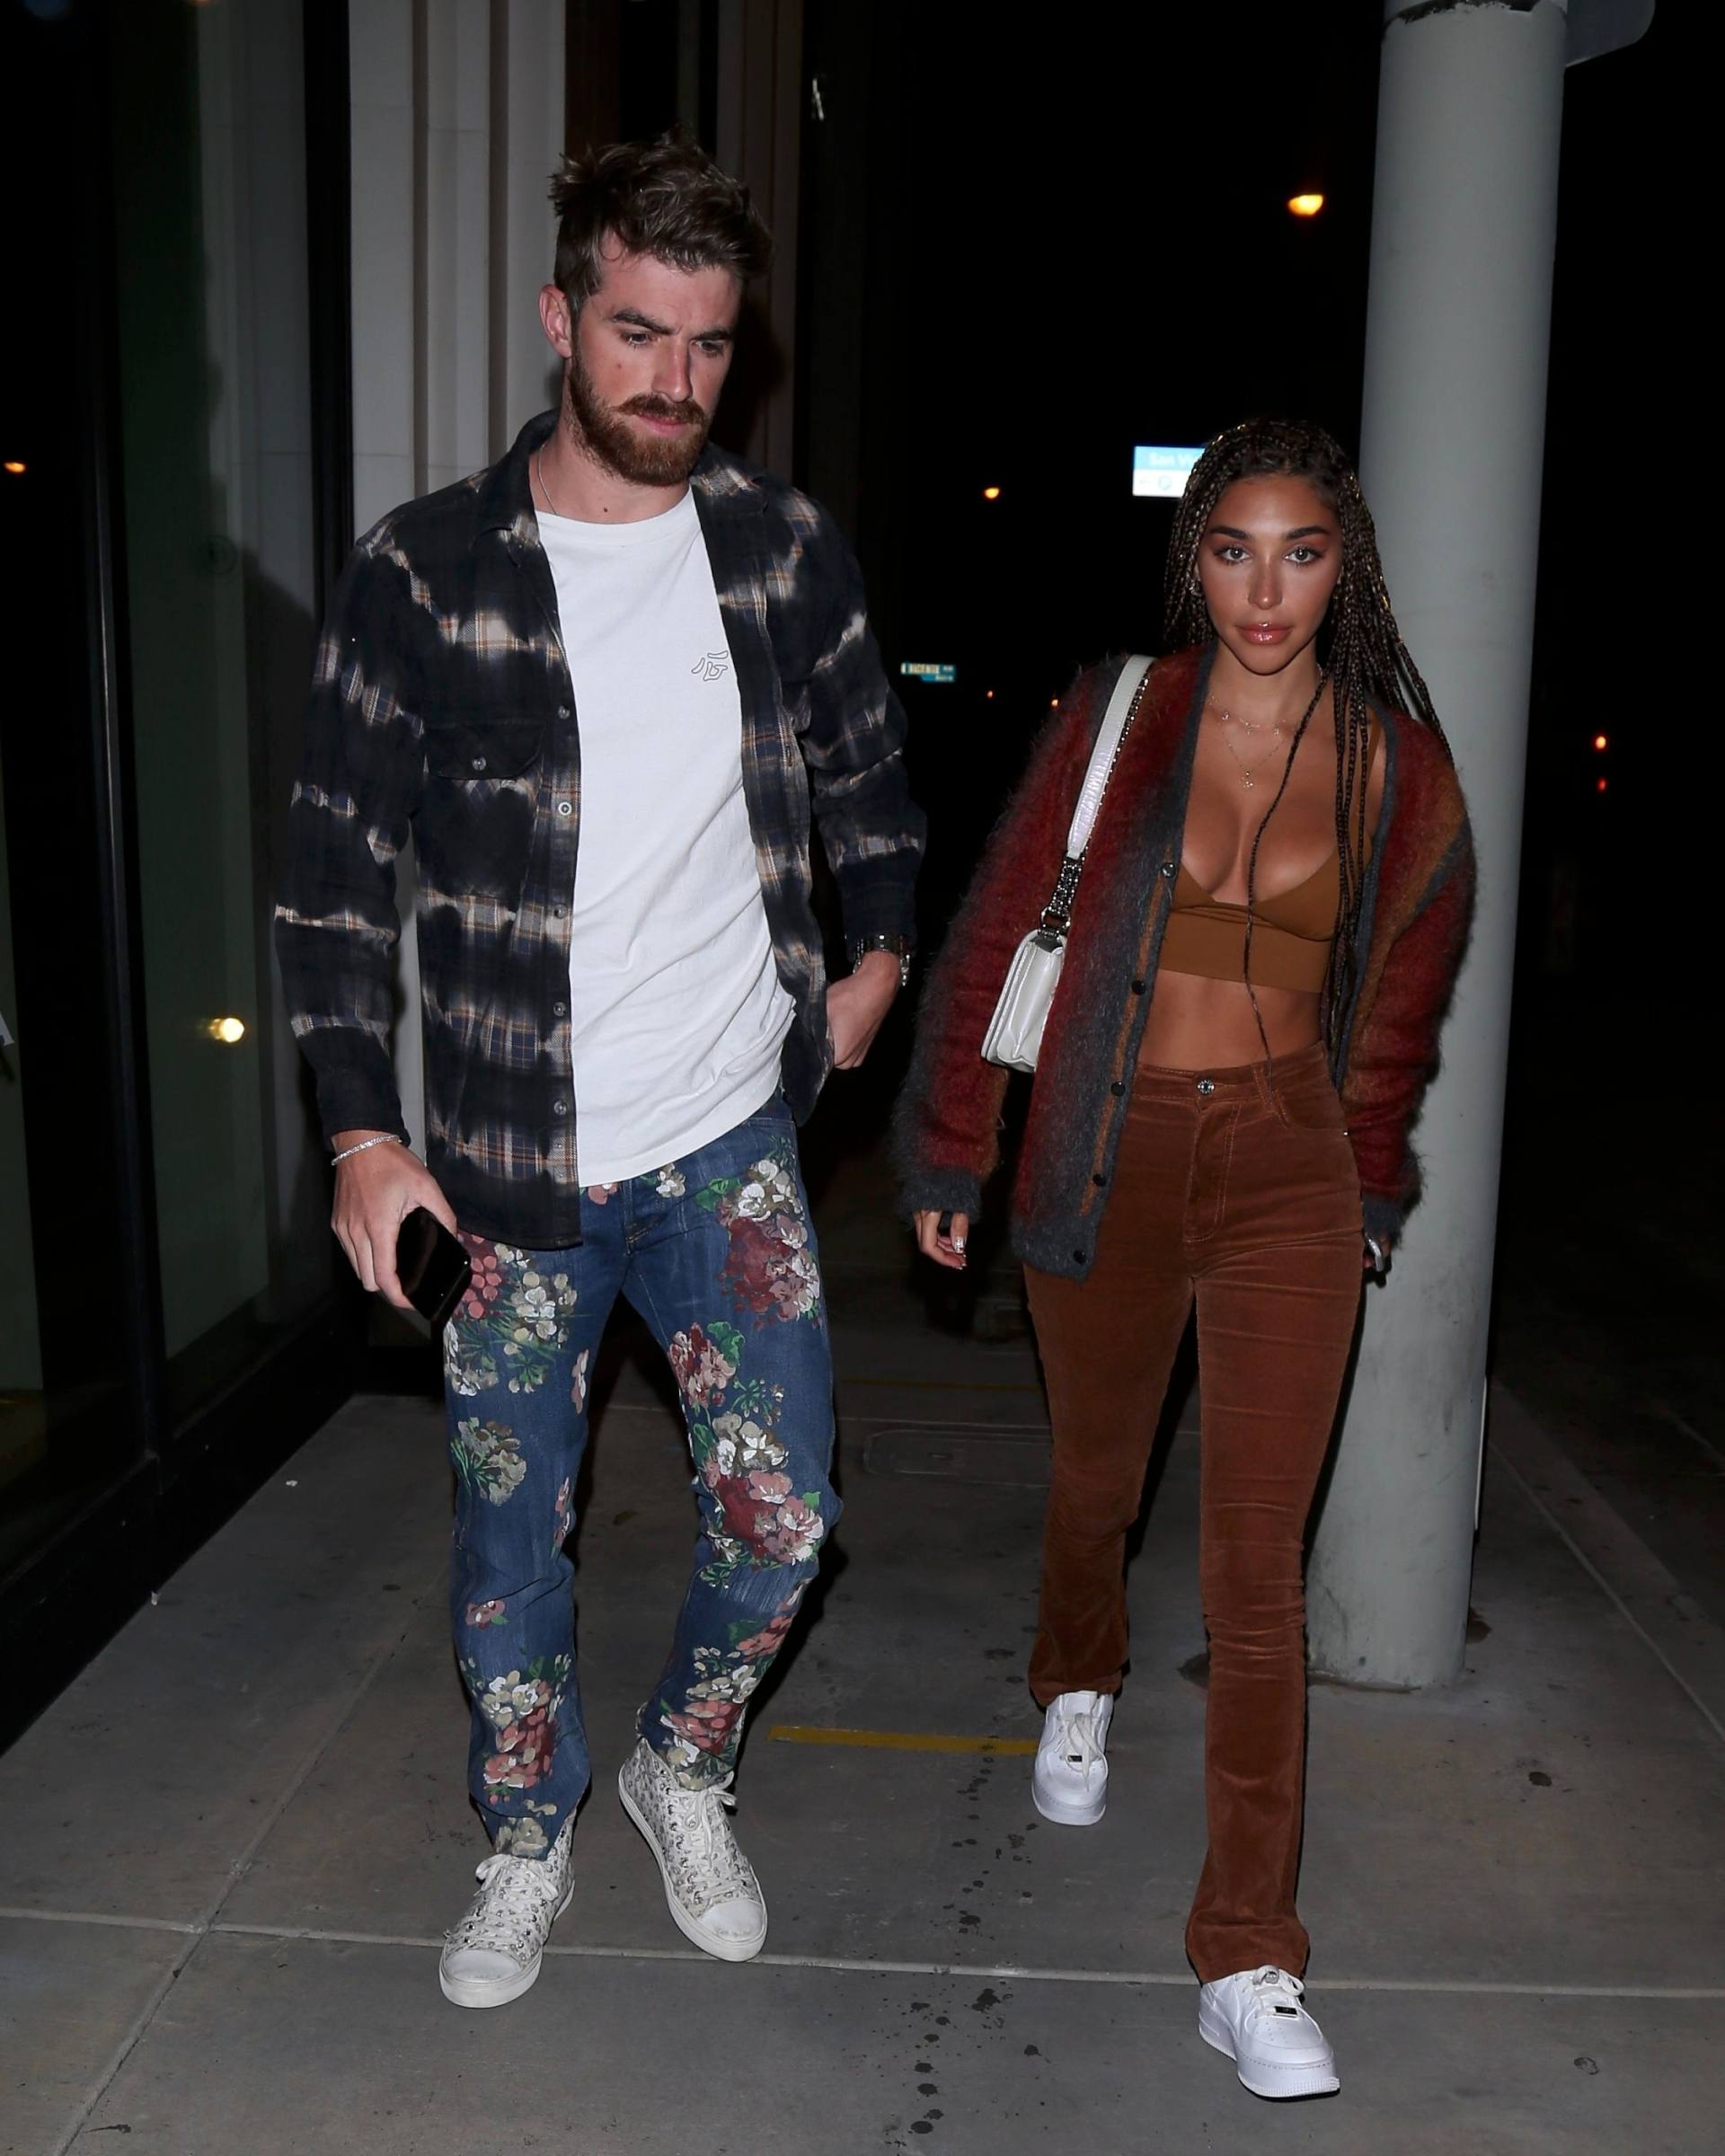 Chantel Jeffries – Sexy Boobs In Big Cleavage At Catch Restaurant In West Hollywood 0005